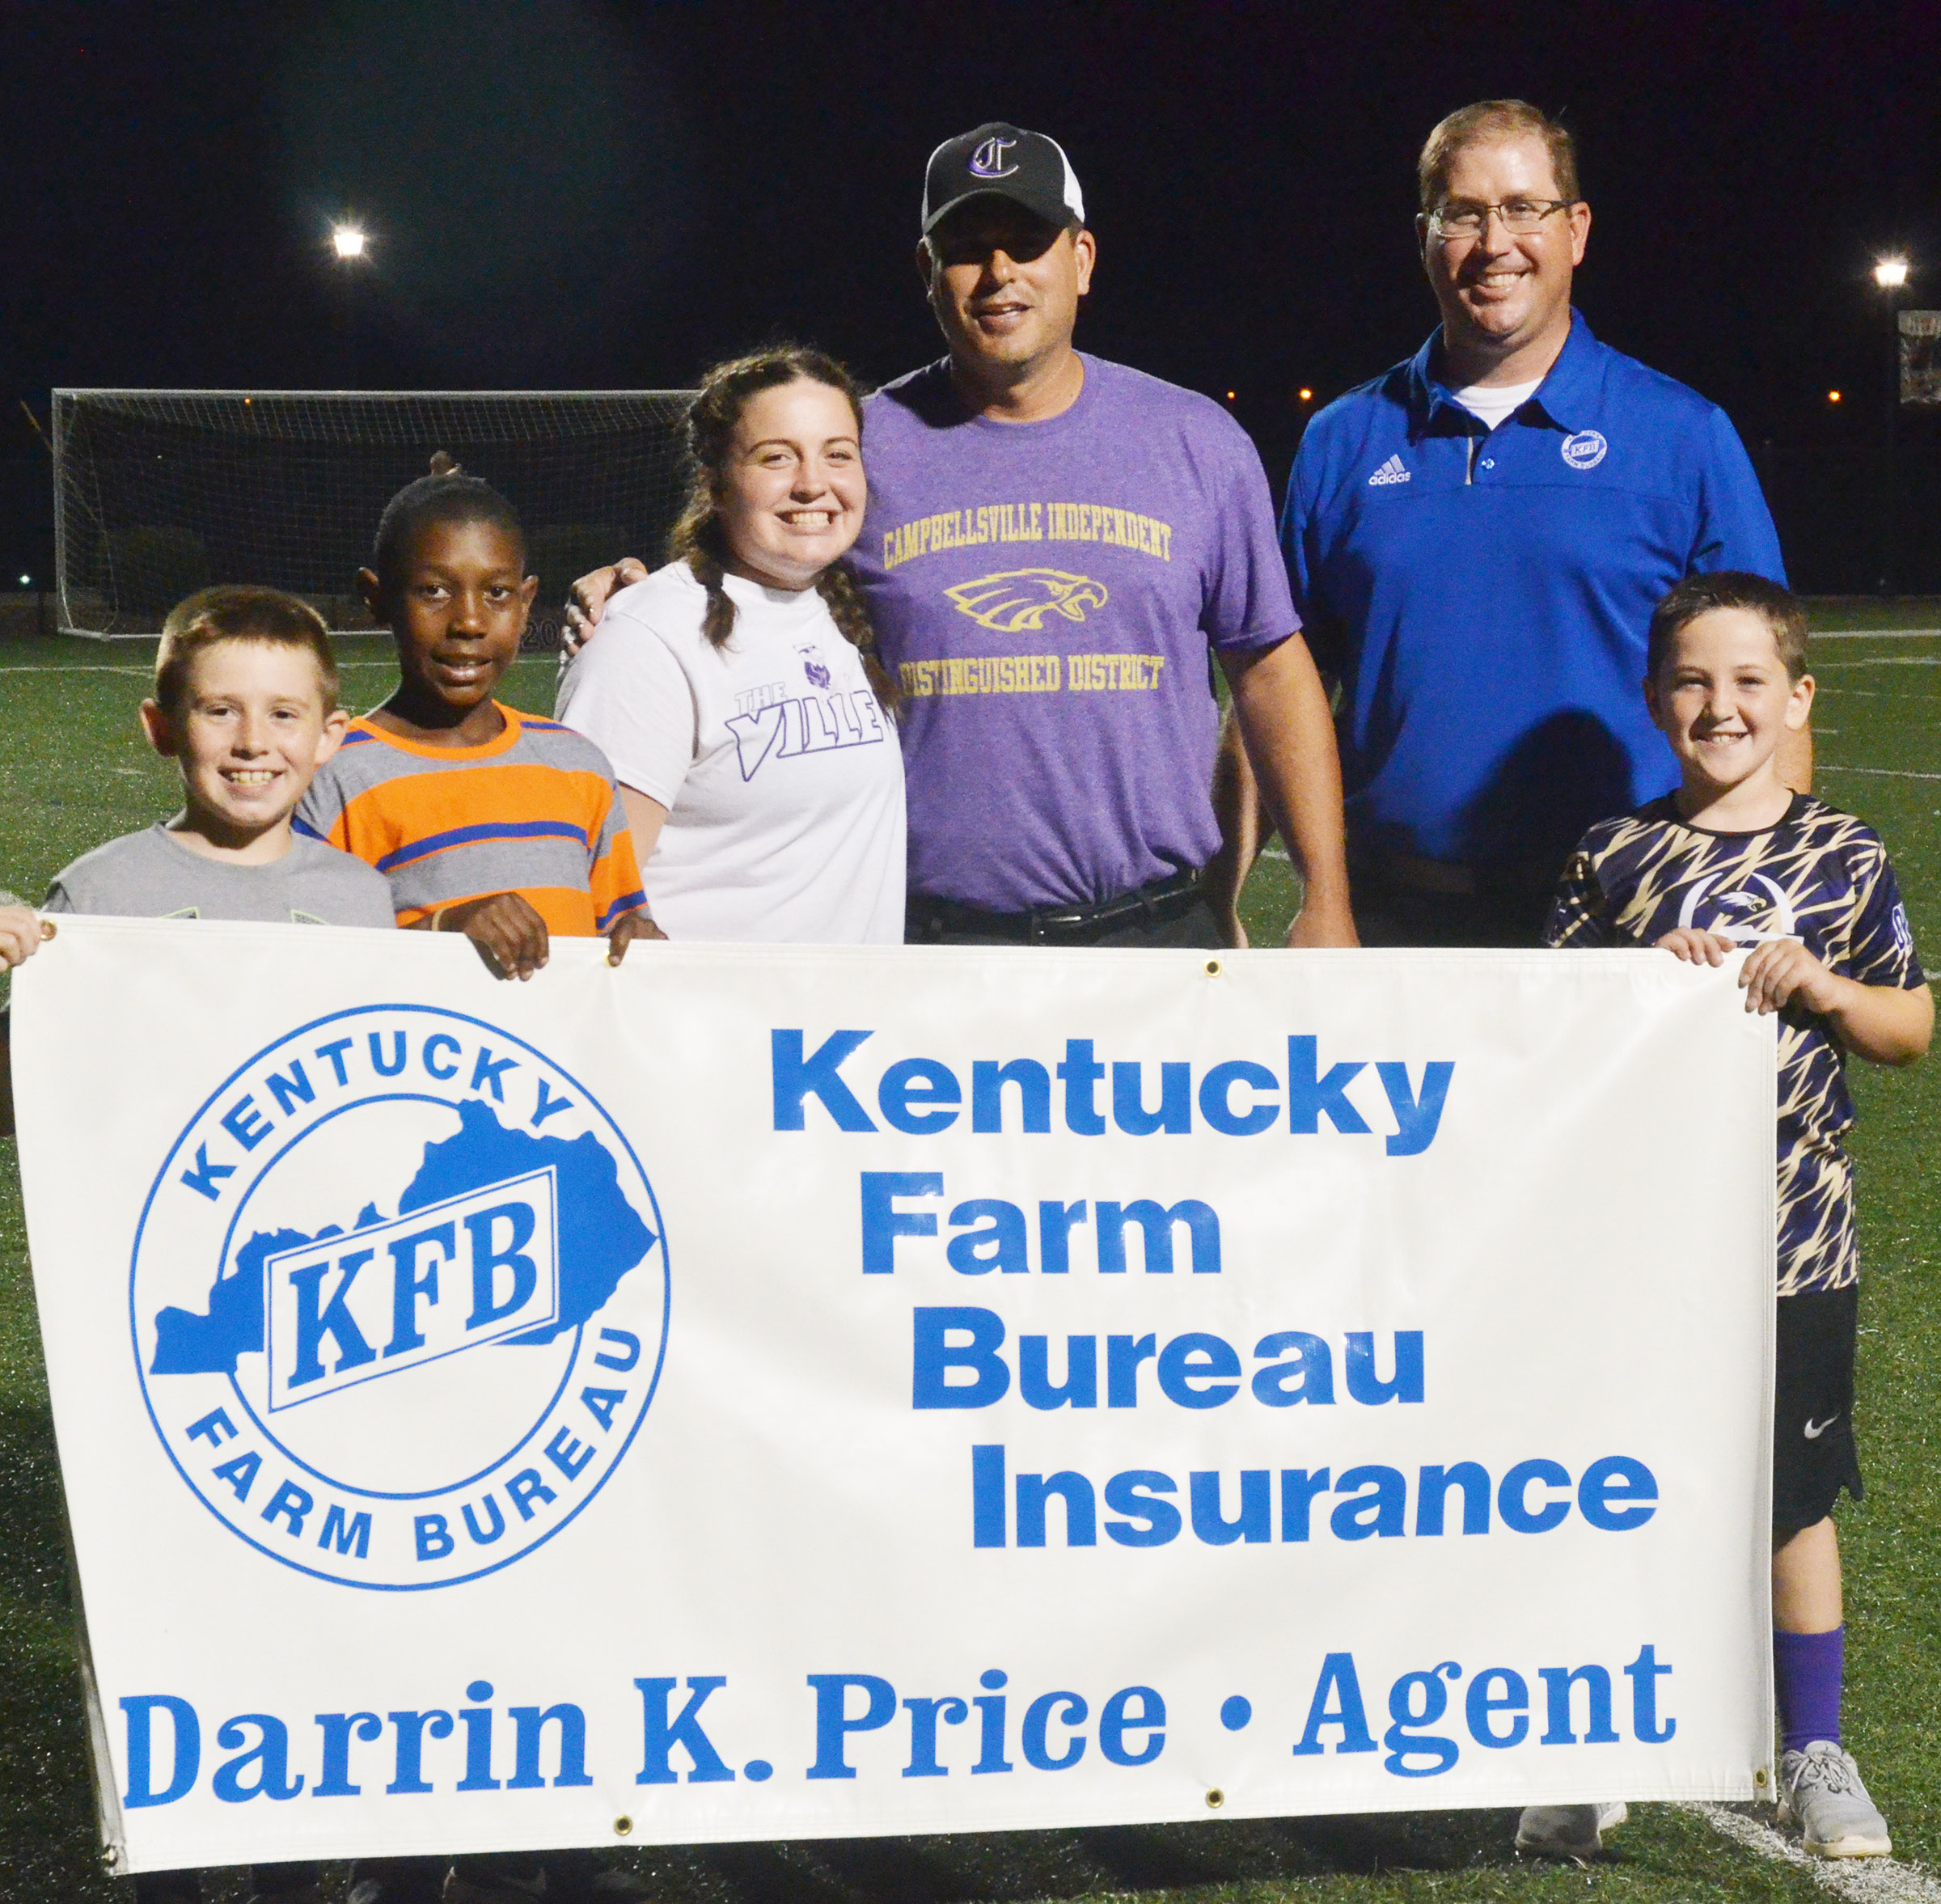 Kentucky Farm Bureau agent Darrin Price, in back, at right, sponsored a halftime field goal kick during the game. Campbellsville Independent Schools Superintendent Kirby Smith attempted the kick. If he made it, CHS senior Caitlin Bright took home $50. If not, she received $25. Despite his best effort, Smith missed the kick. From left are Campbellsville Elementary School third-graders Lanigan Price and Jaron Johnson, Bright, Smith, Price and third-grader Luke Adkins.